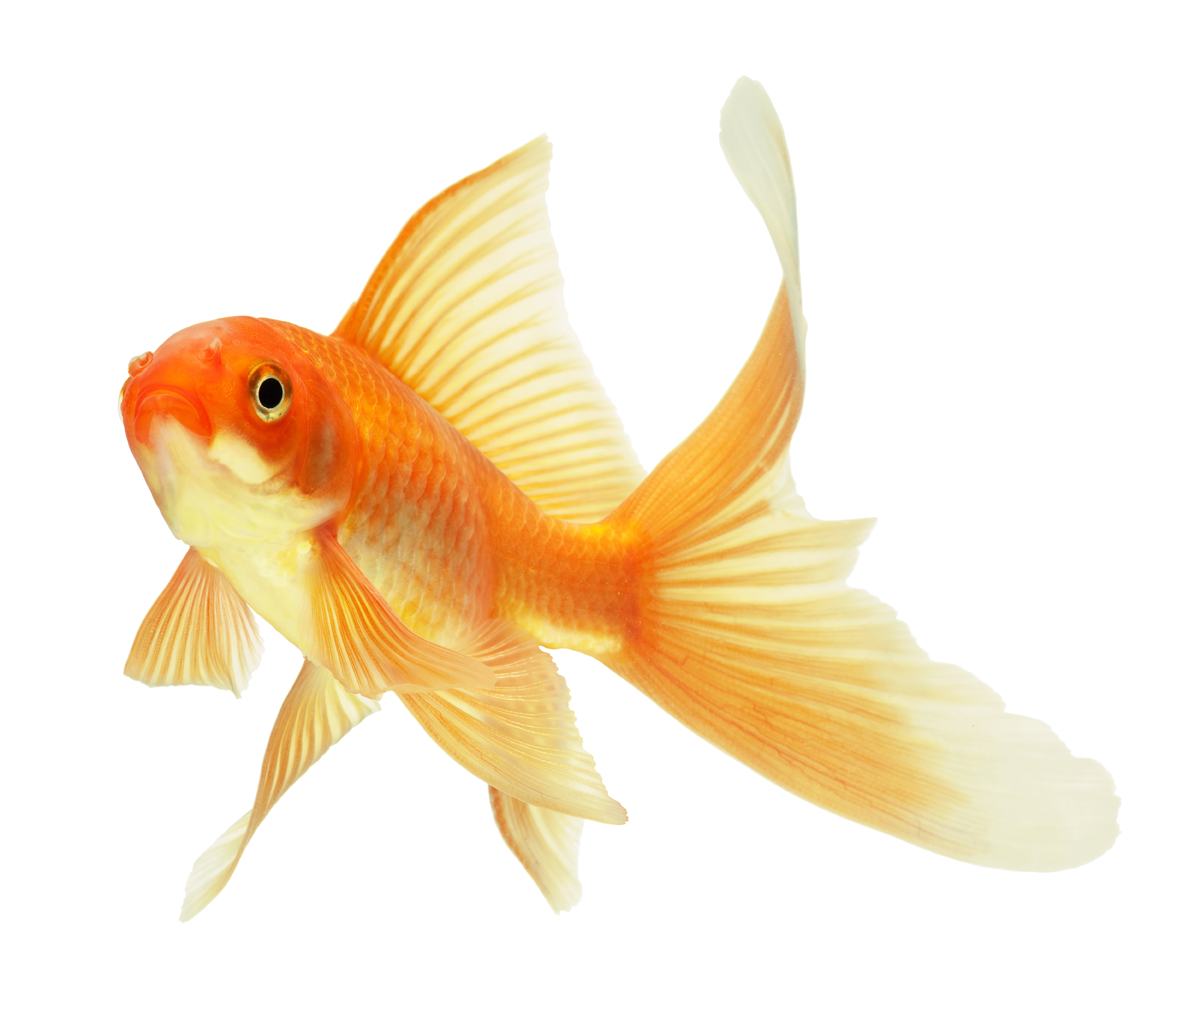 Goldfish Png 1189 10 47825 Png Images Pngio